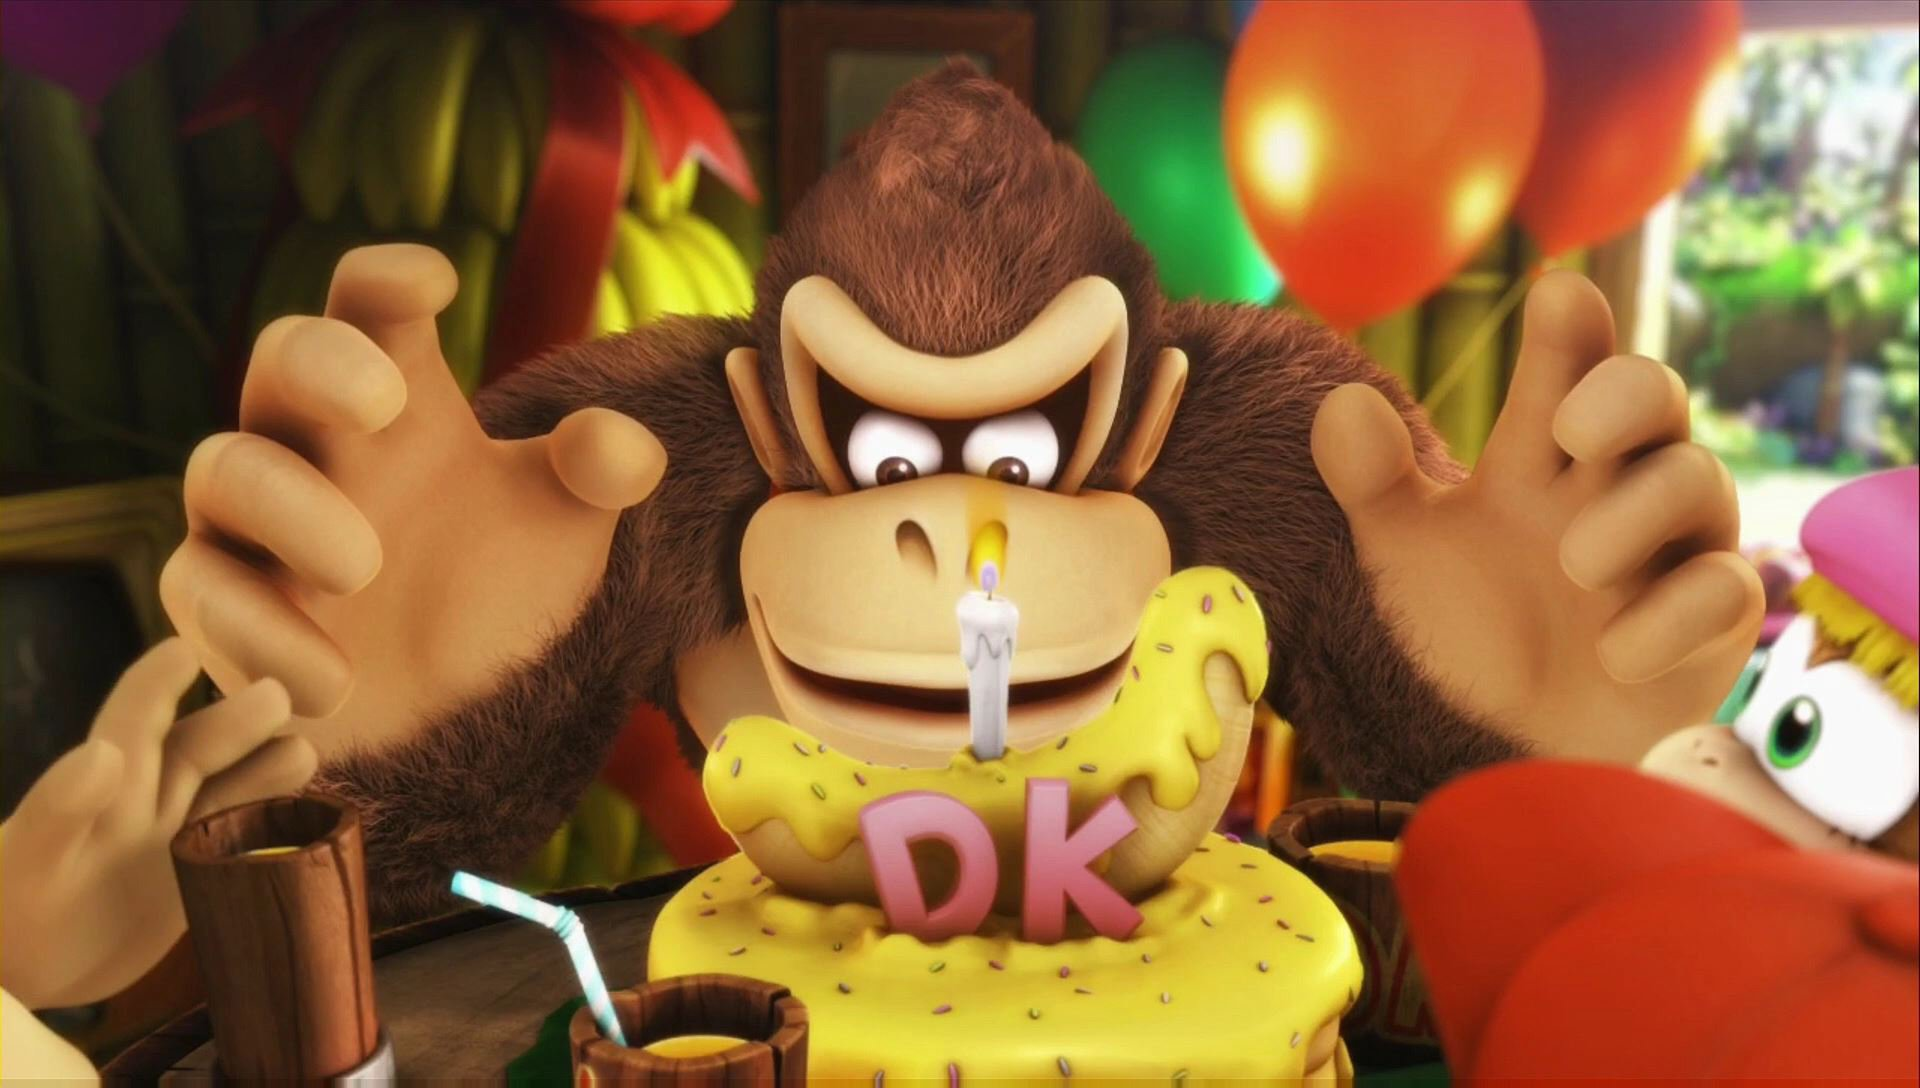 If Donkey Kong Were A Real Gorilla, He Might Be Dead